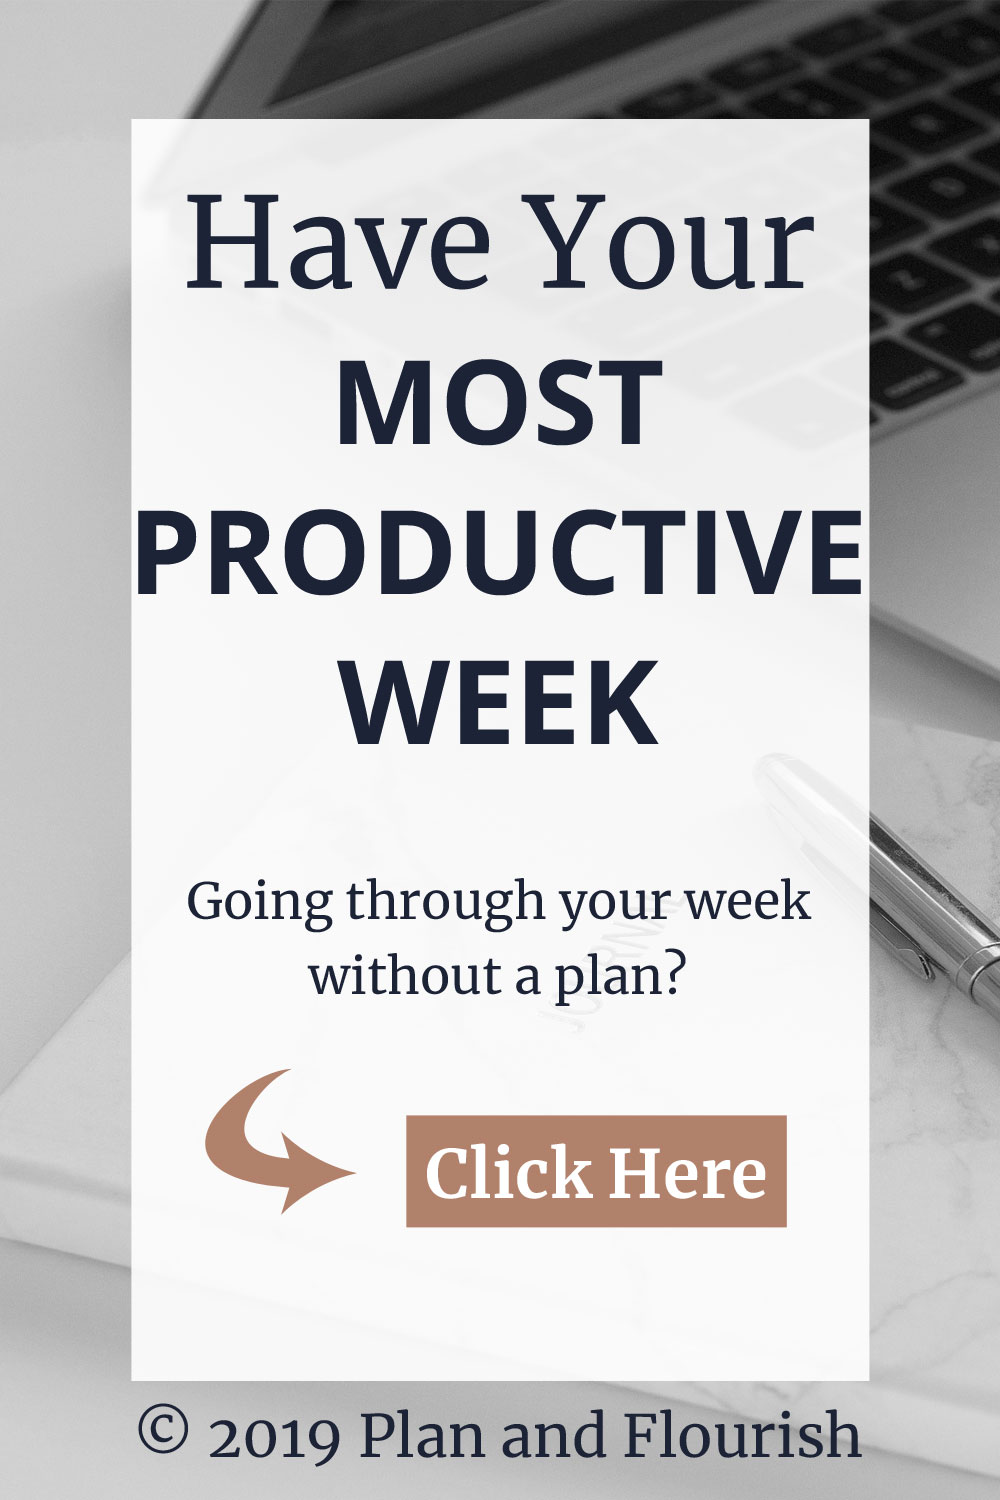 Are you going through your week without a plan? No more! | Click here to have your most productive week.